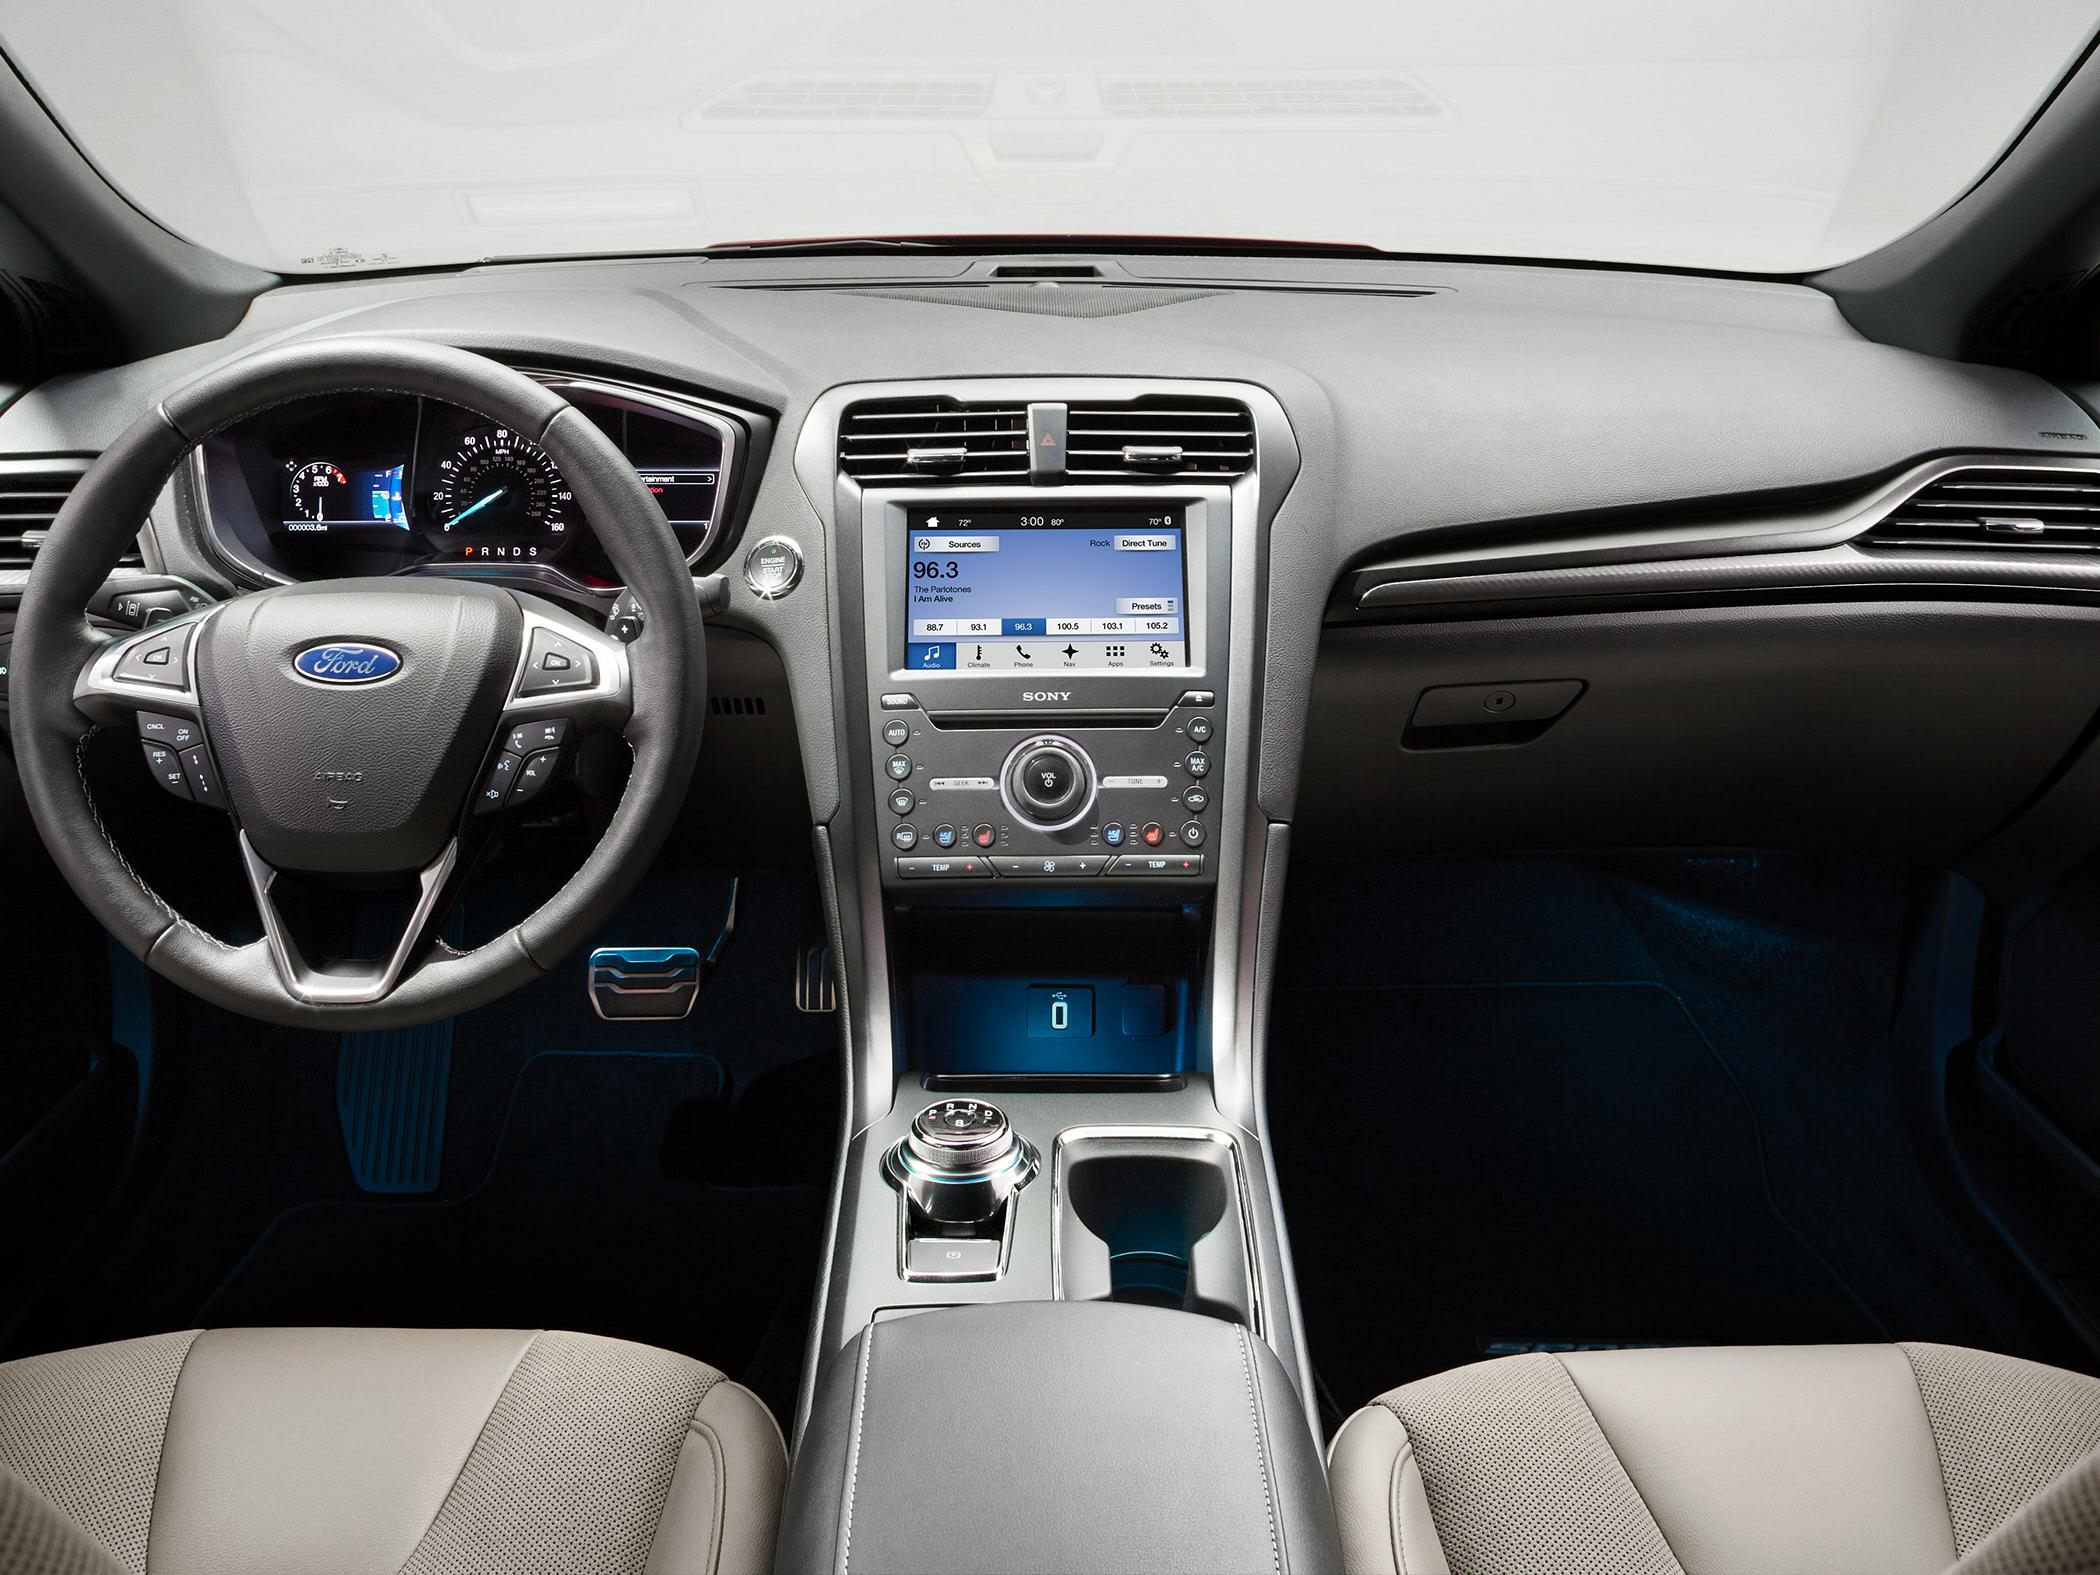 2017 ford fusion styles & features highlights